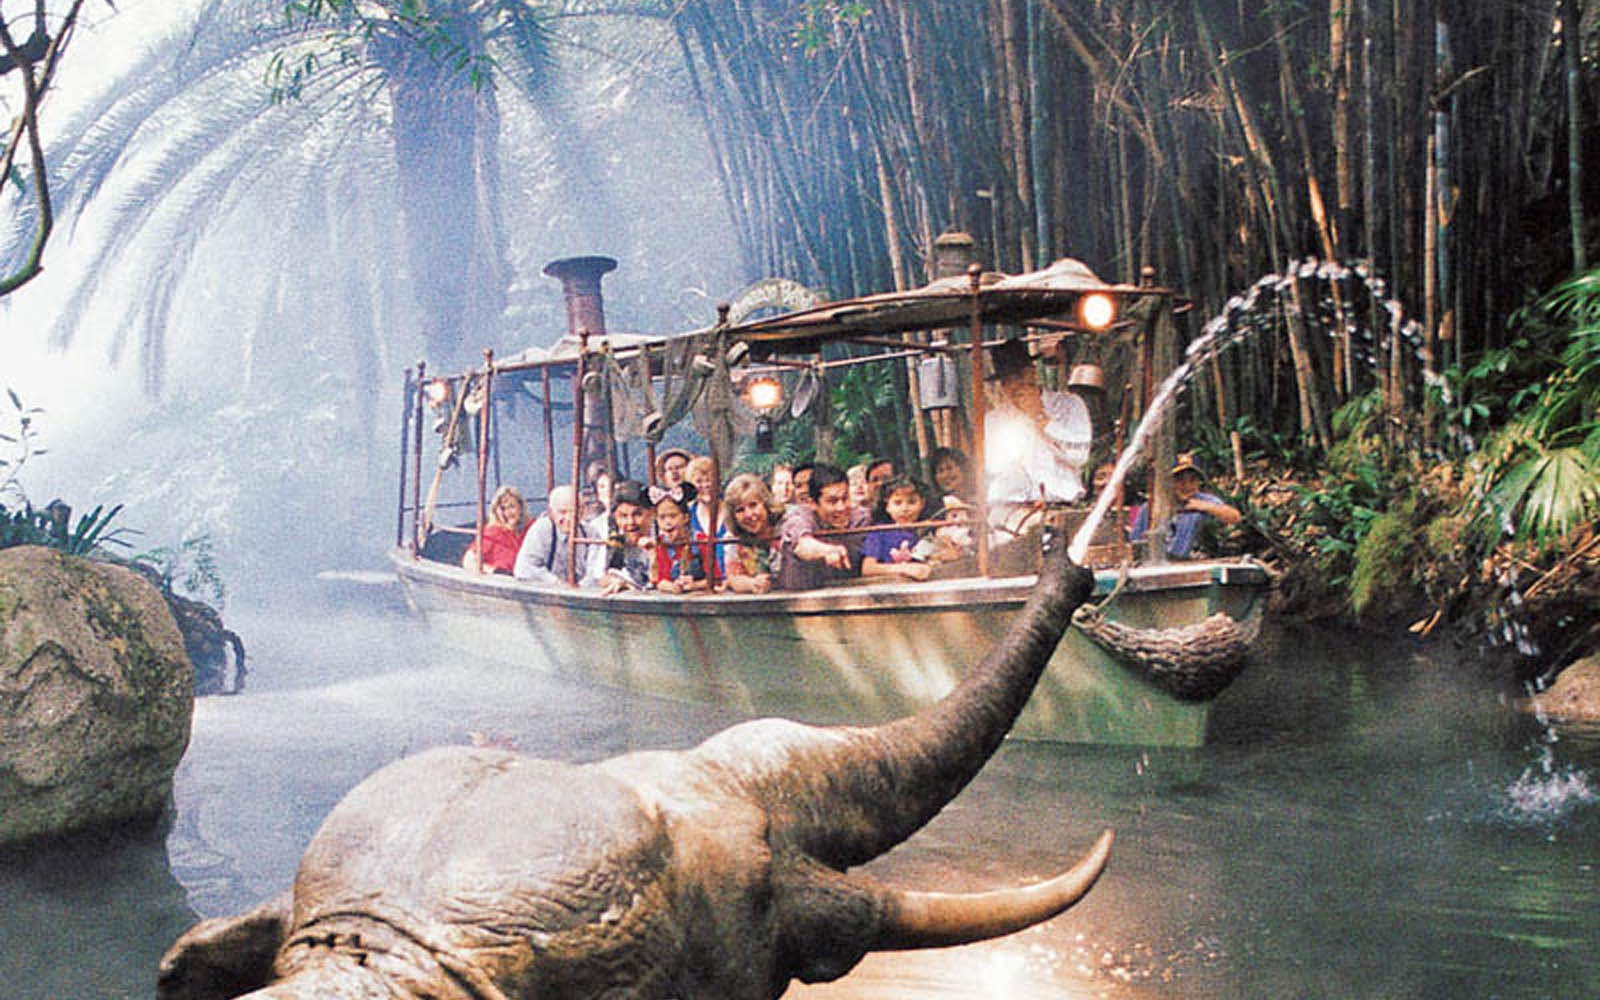 14 Surprising Stories You've Never Heard About Disney's Adventureland